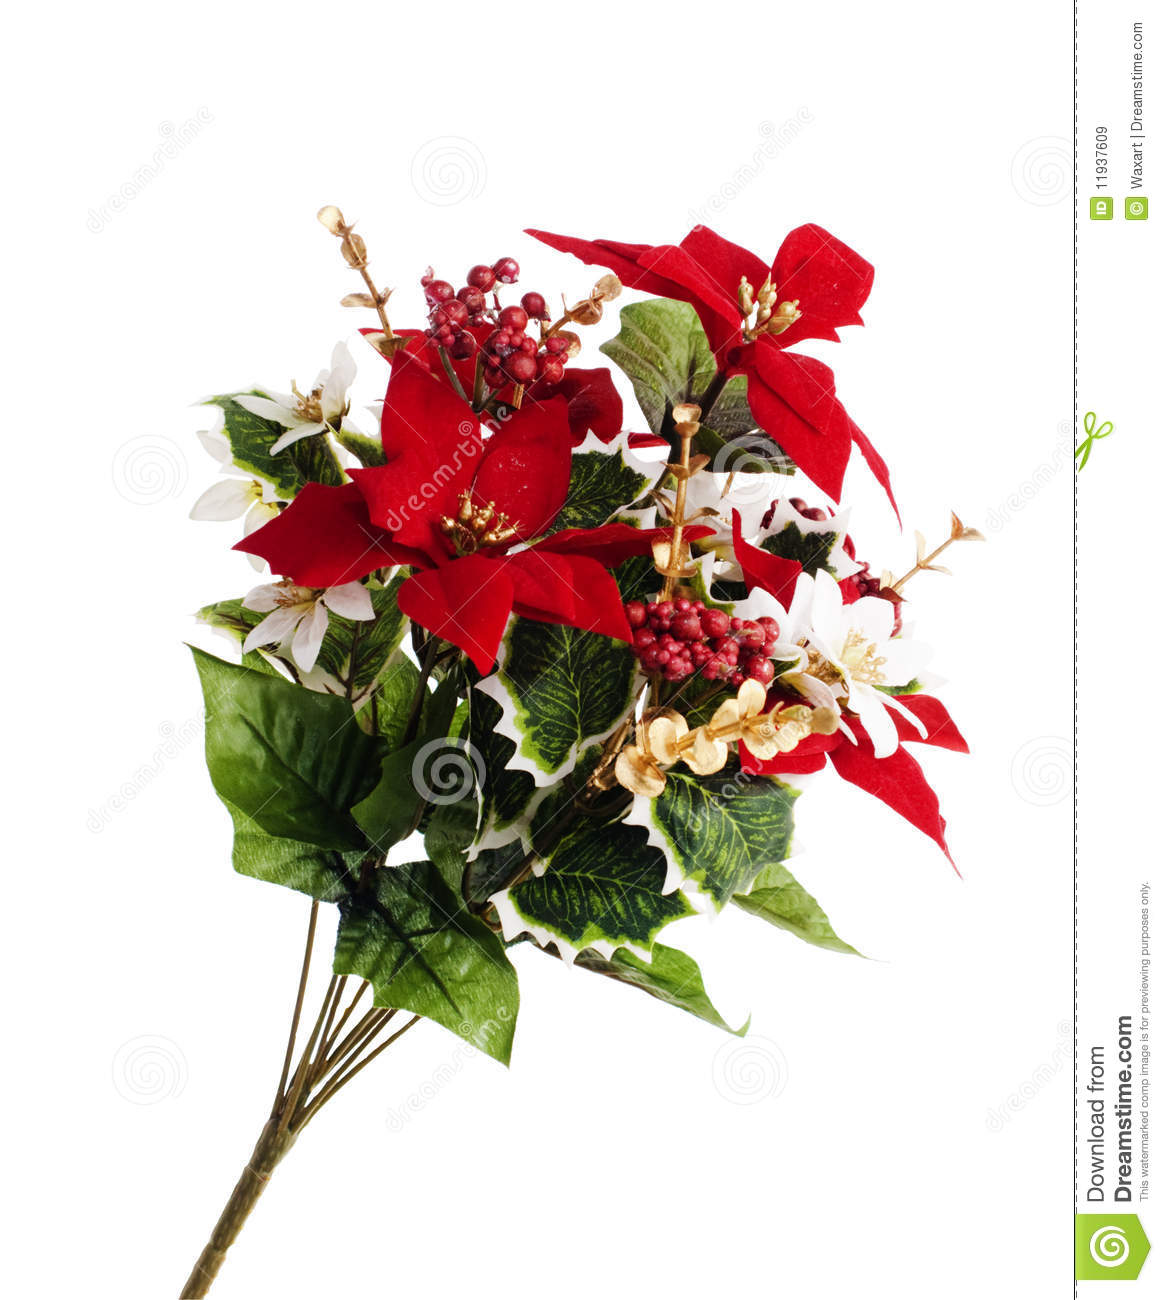 Christmas flowers pictures free clipart freeuse download Spray Of Christmas Flowers Royalty Free Stock Images - Image: 11937609 clipart freeuse download